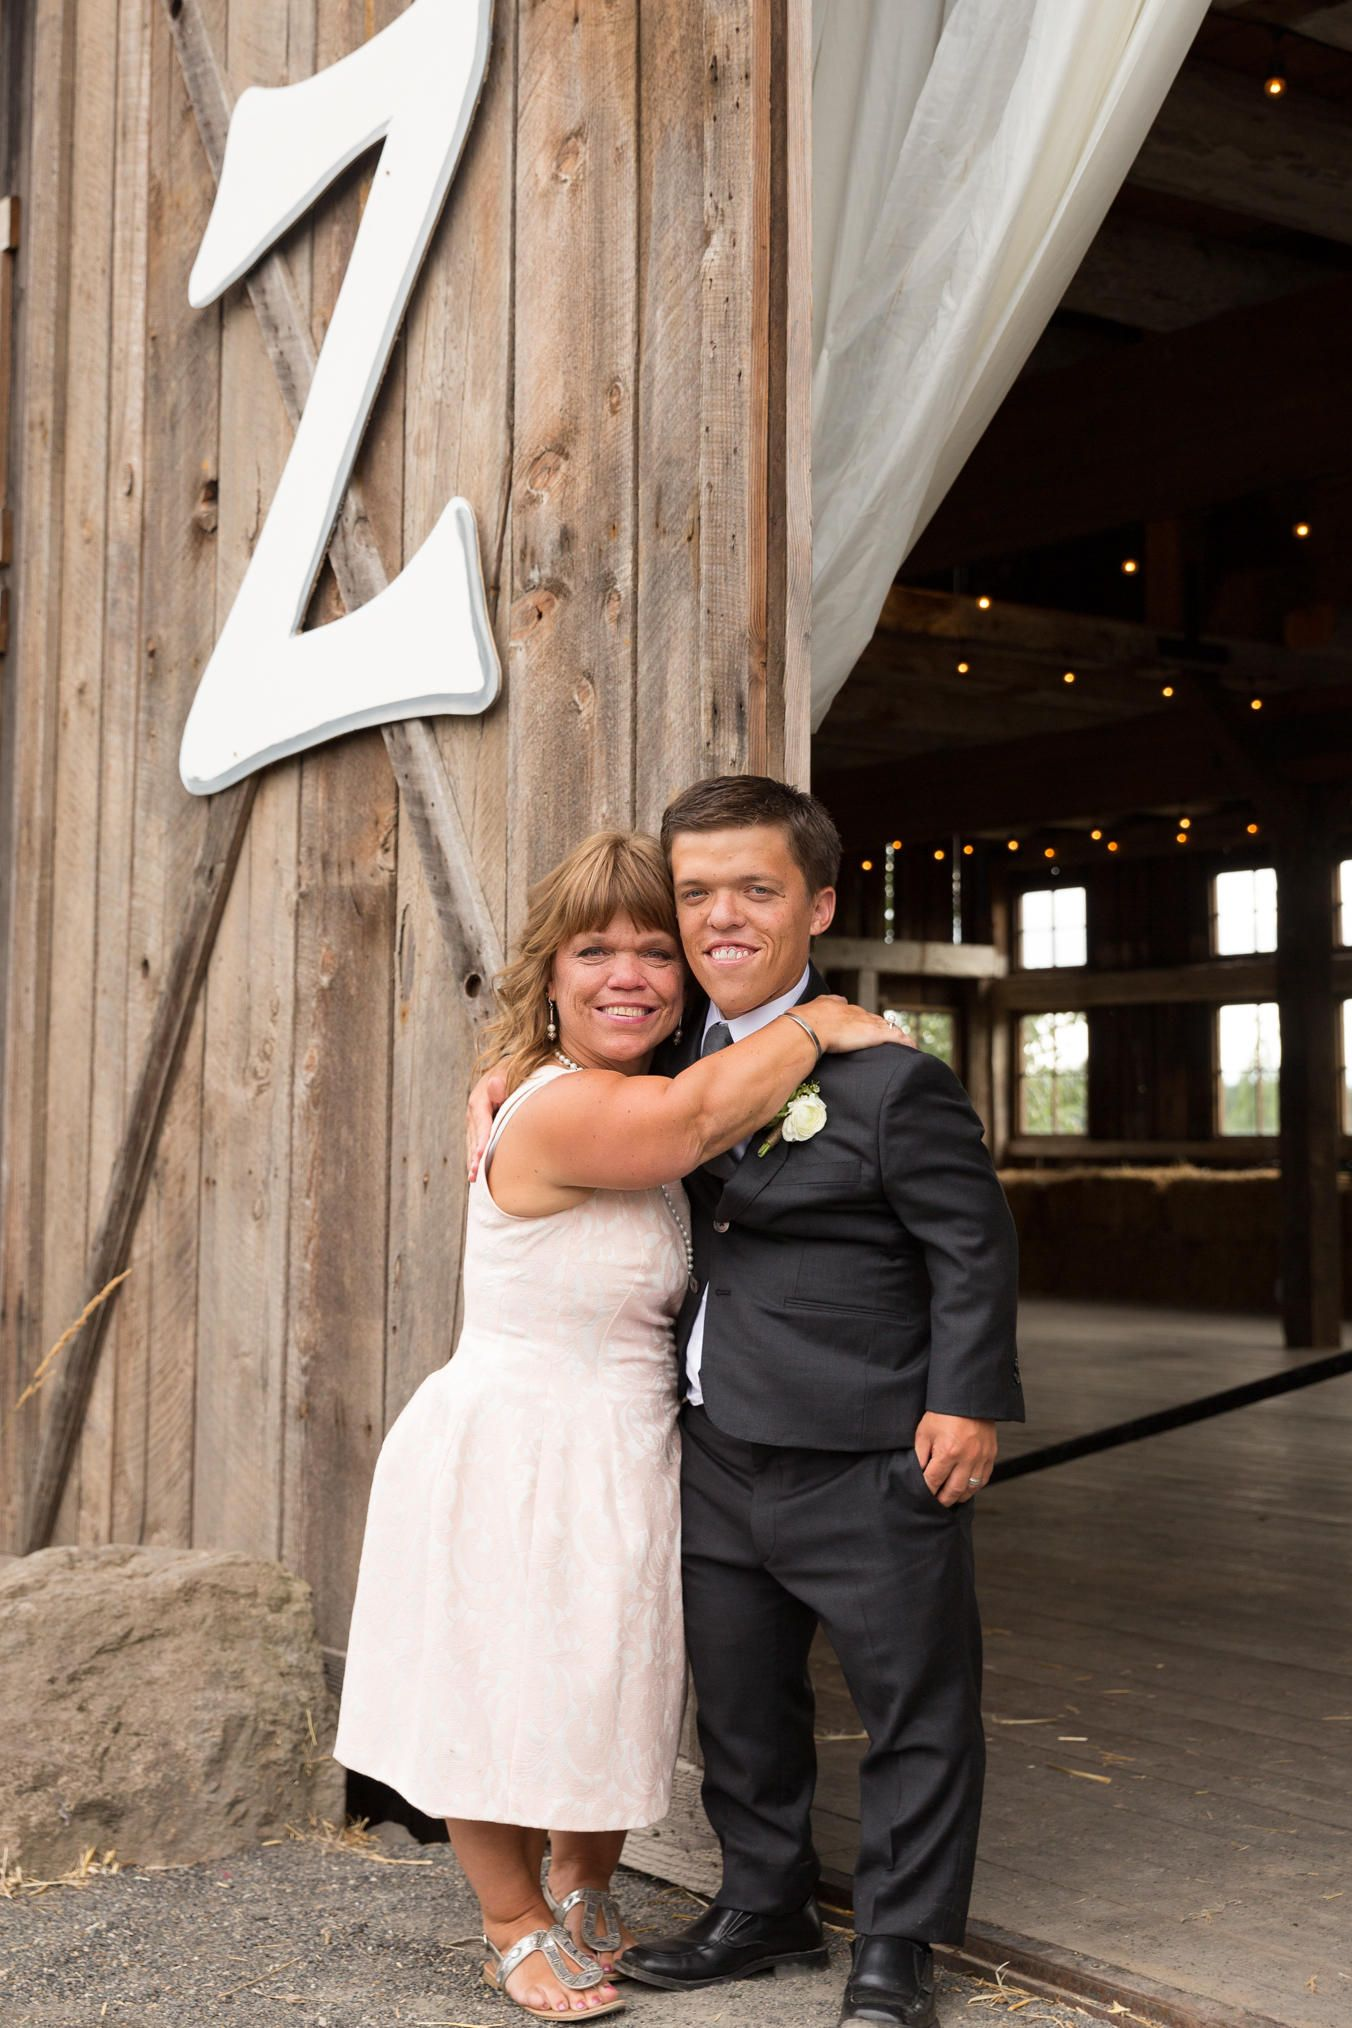 Tlc Official Site Little People Big World Tori Roloff Wedding After Party